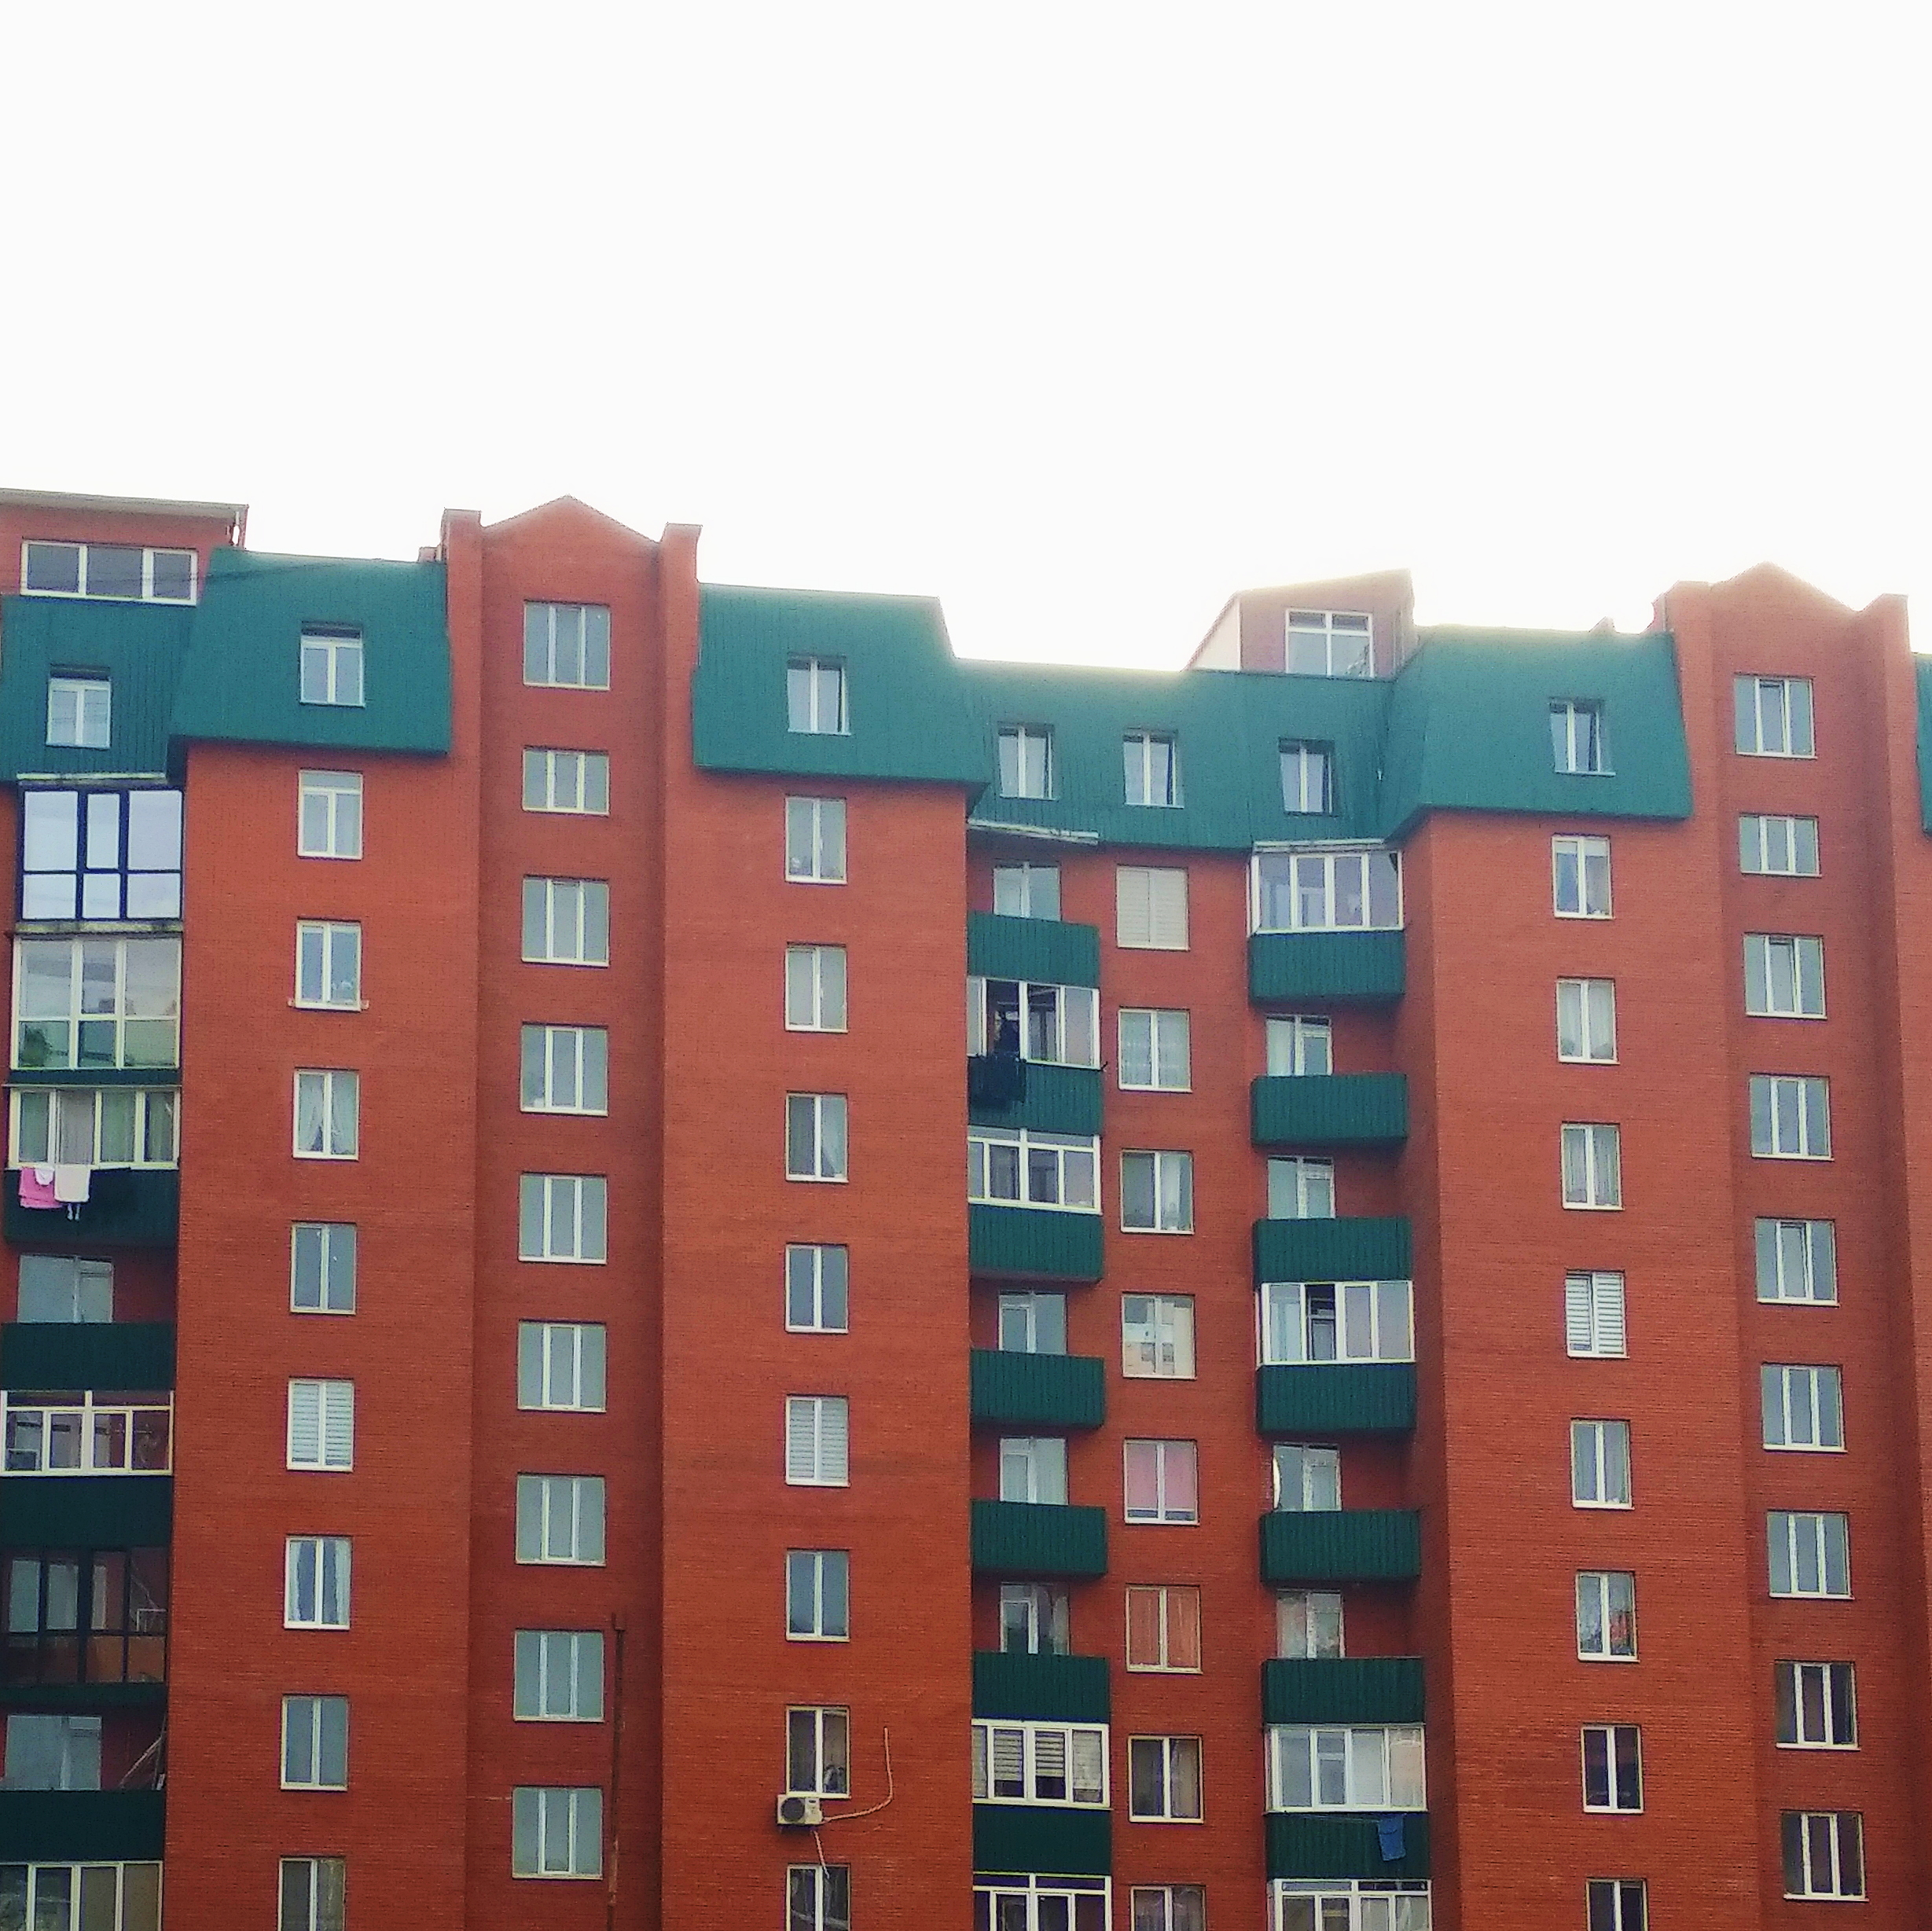 Image of a block of apartments